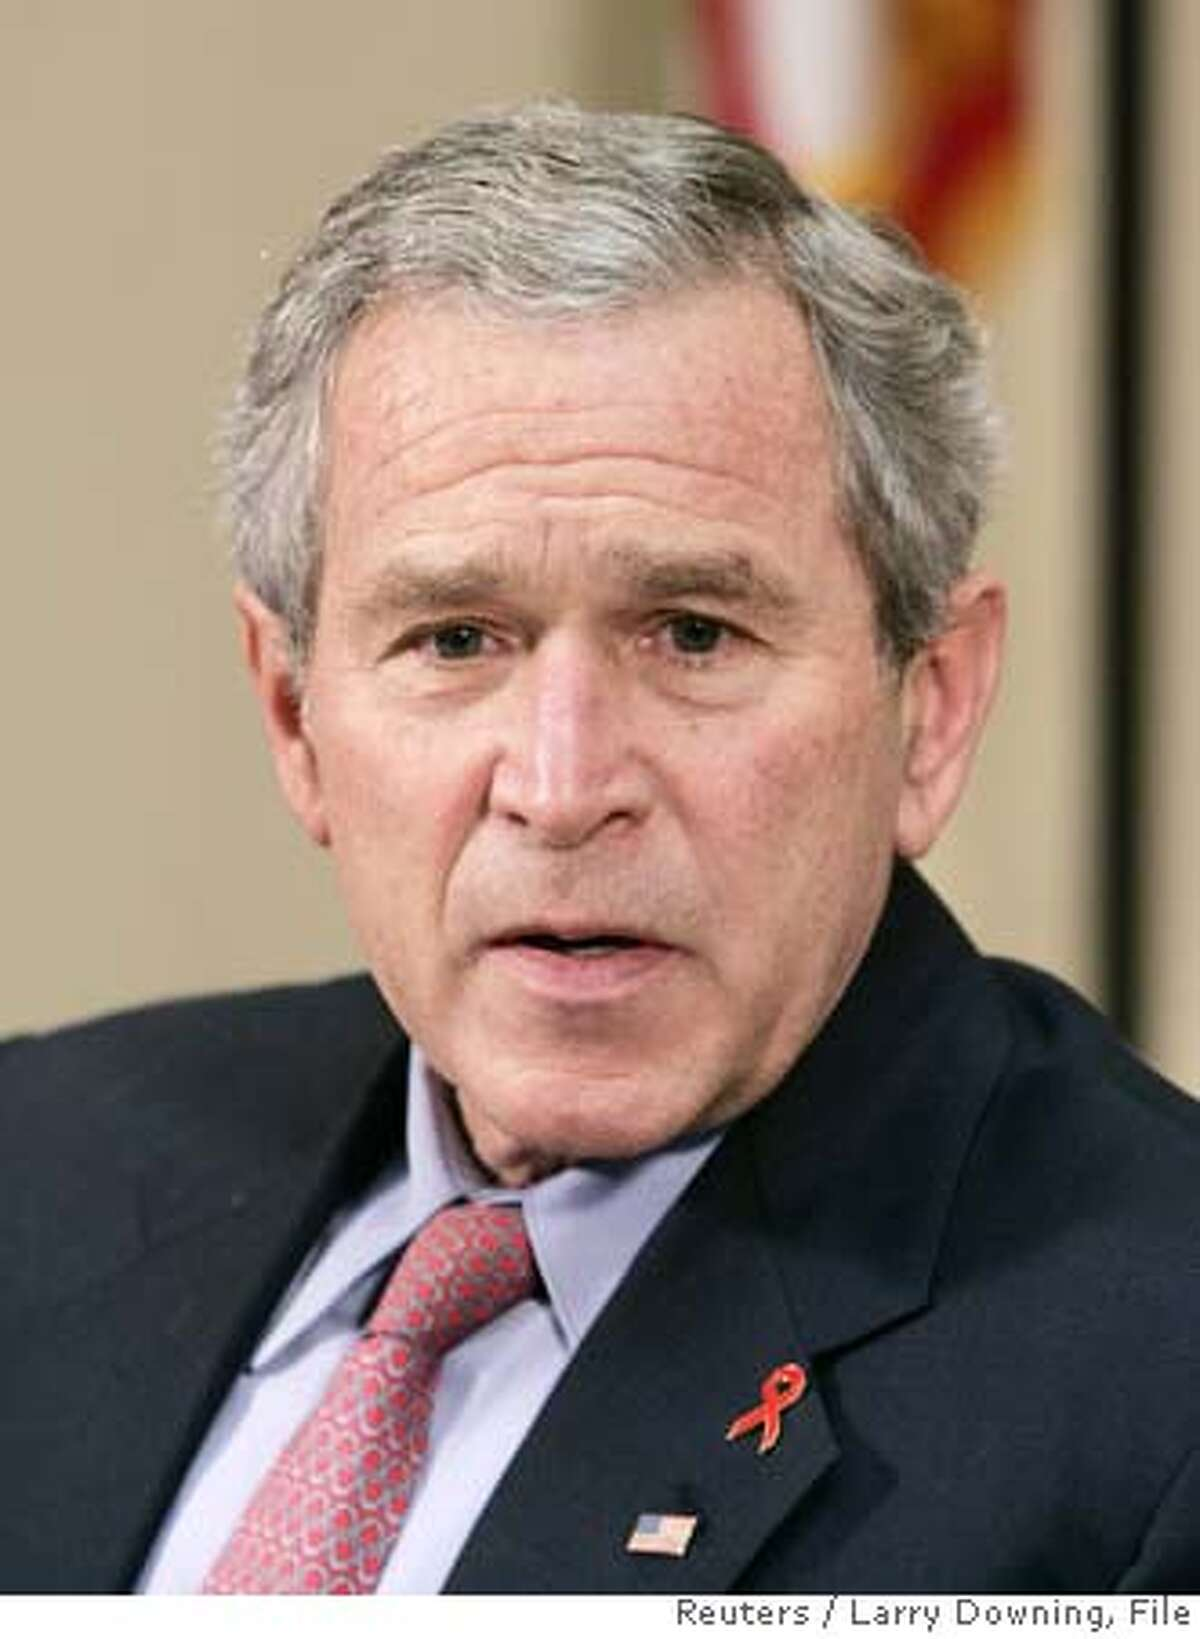 U.S. President George W. Bush, wears an AIDS Awareness lapel pin while hosting a meeting on World AIDS Day in the Roosevelt Room at the White House in Washington December 1, 2006. REUTERS/Larry Downing (UNITED STATES) 0